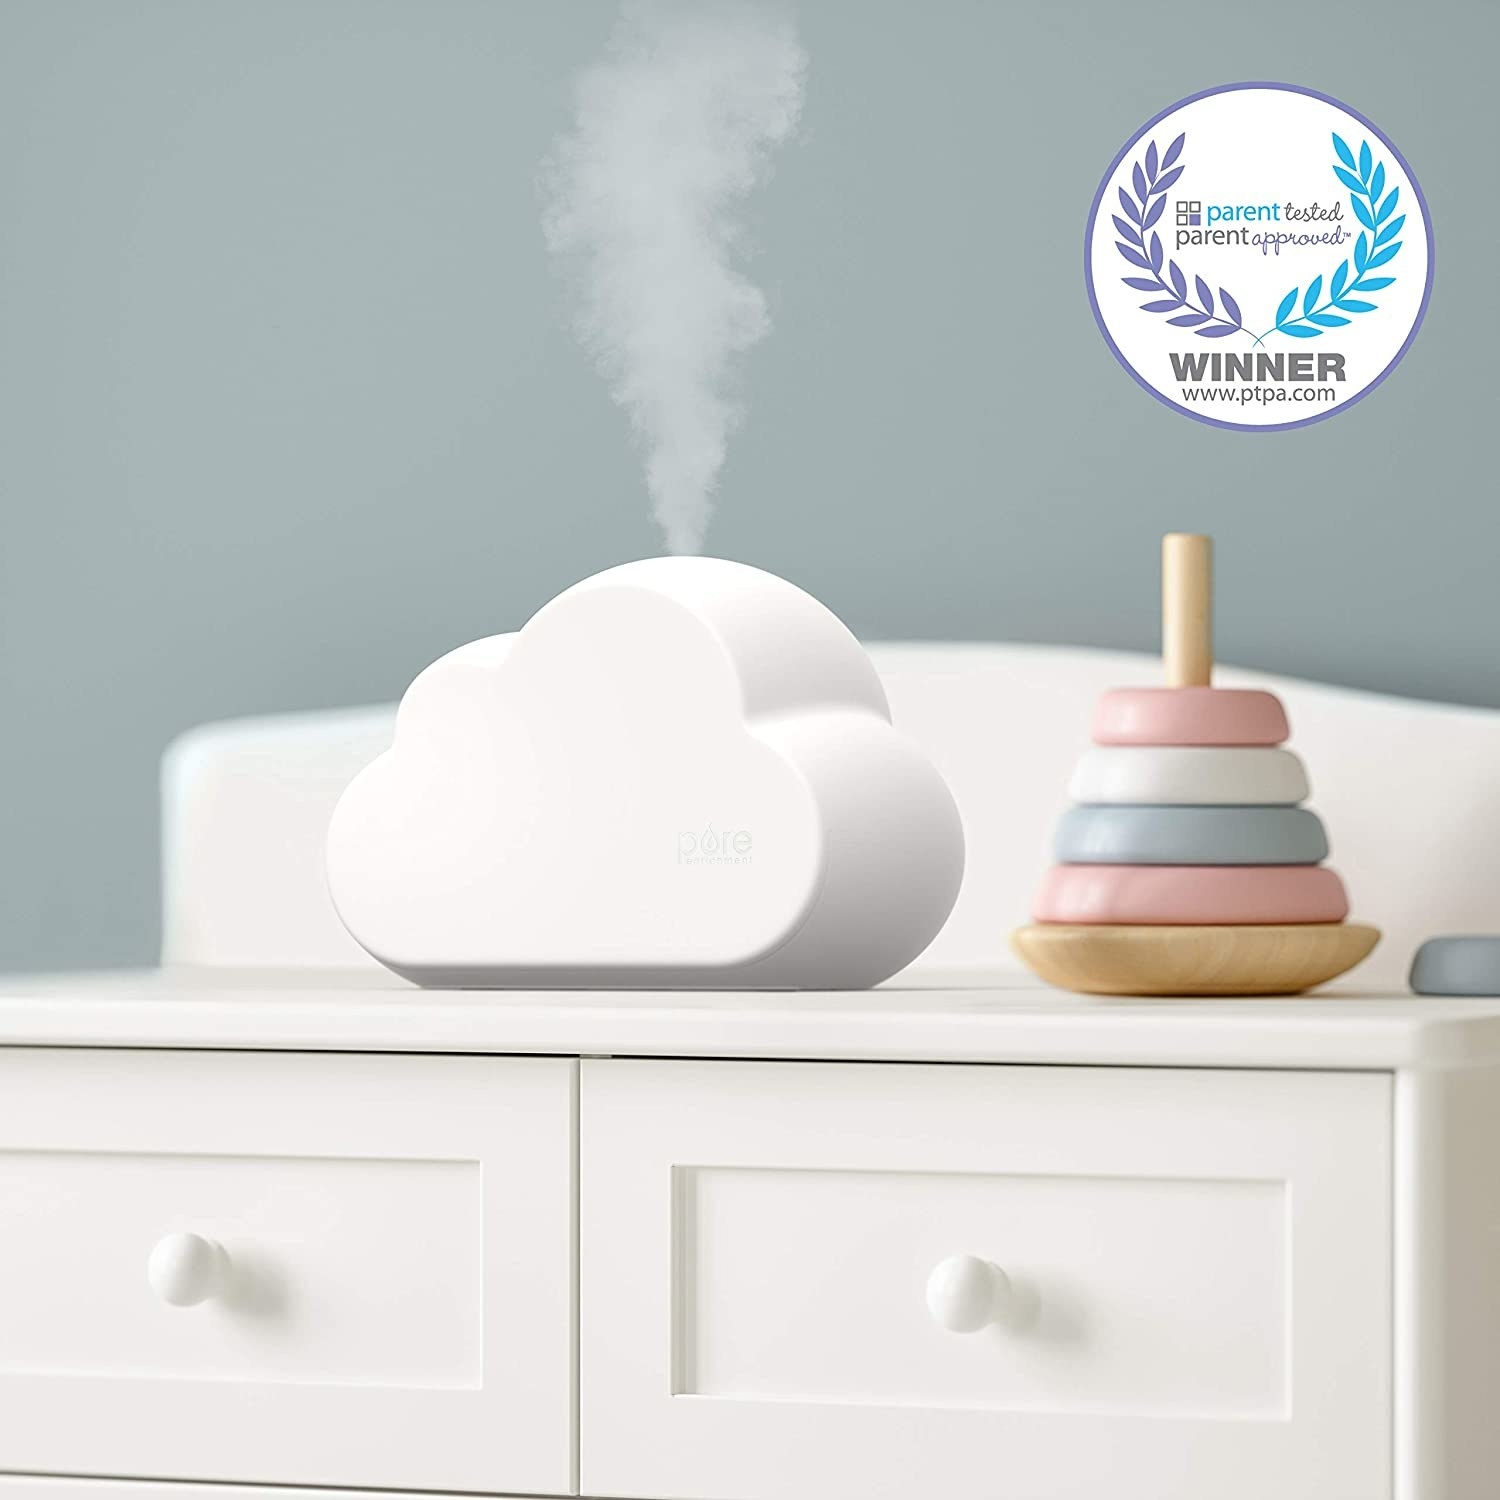 cloud-shaped humidifier releasing steam